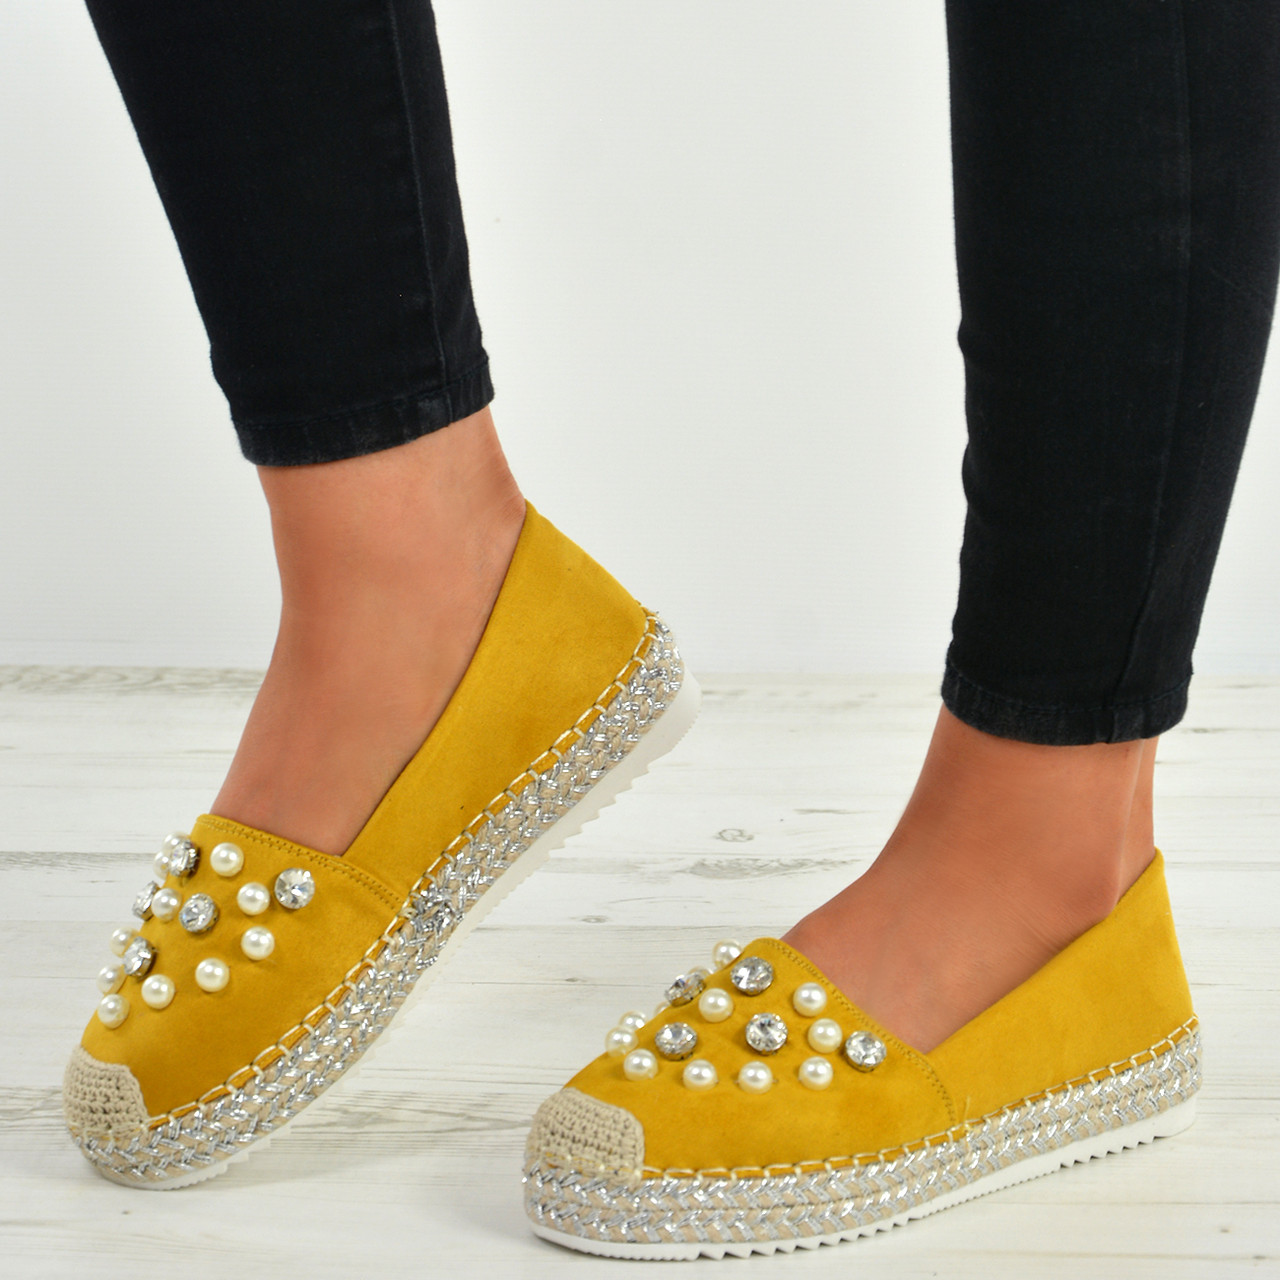 689f82182 Womens Ankle Summer Flats Low Heels Espadrilles Studded Sandals Beach Shoes  Size Women's Shoes